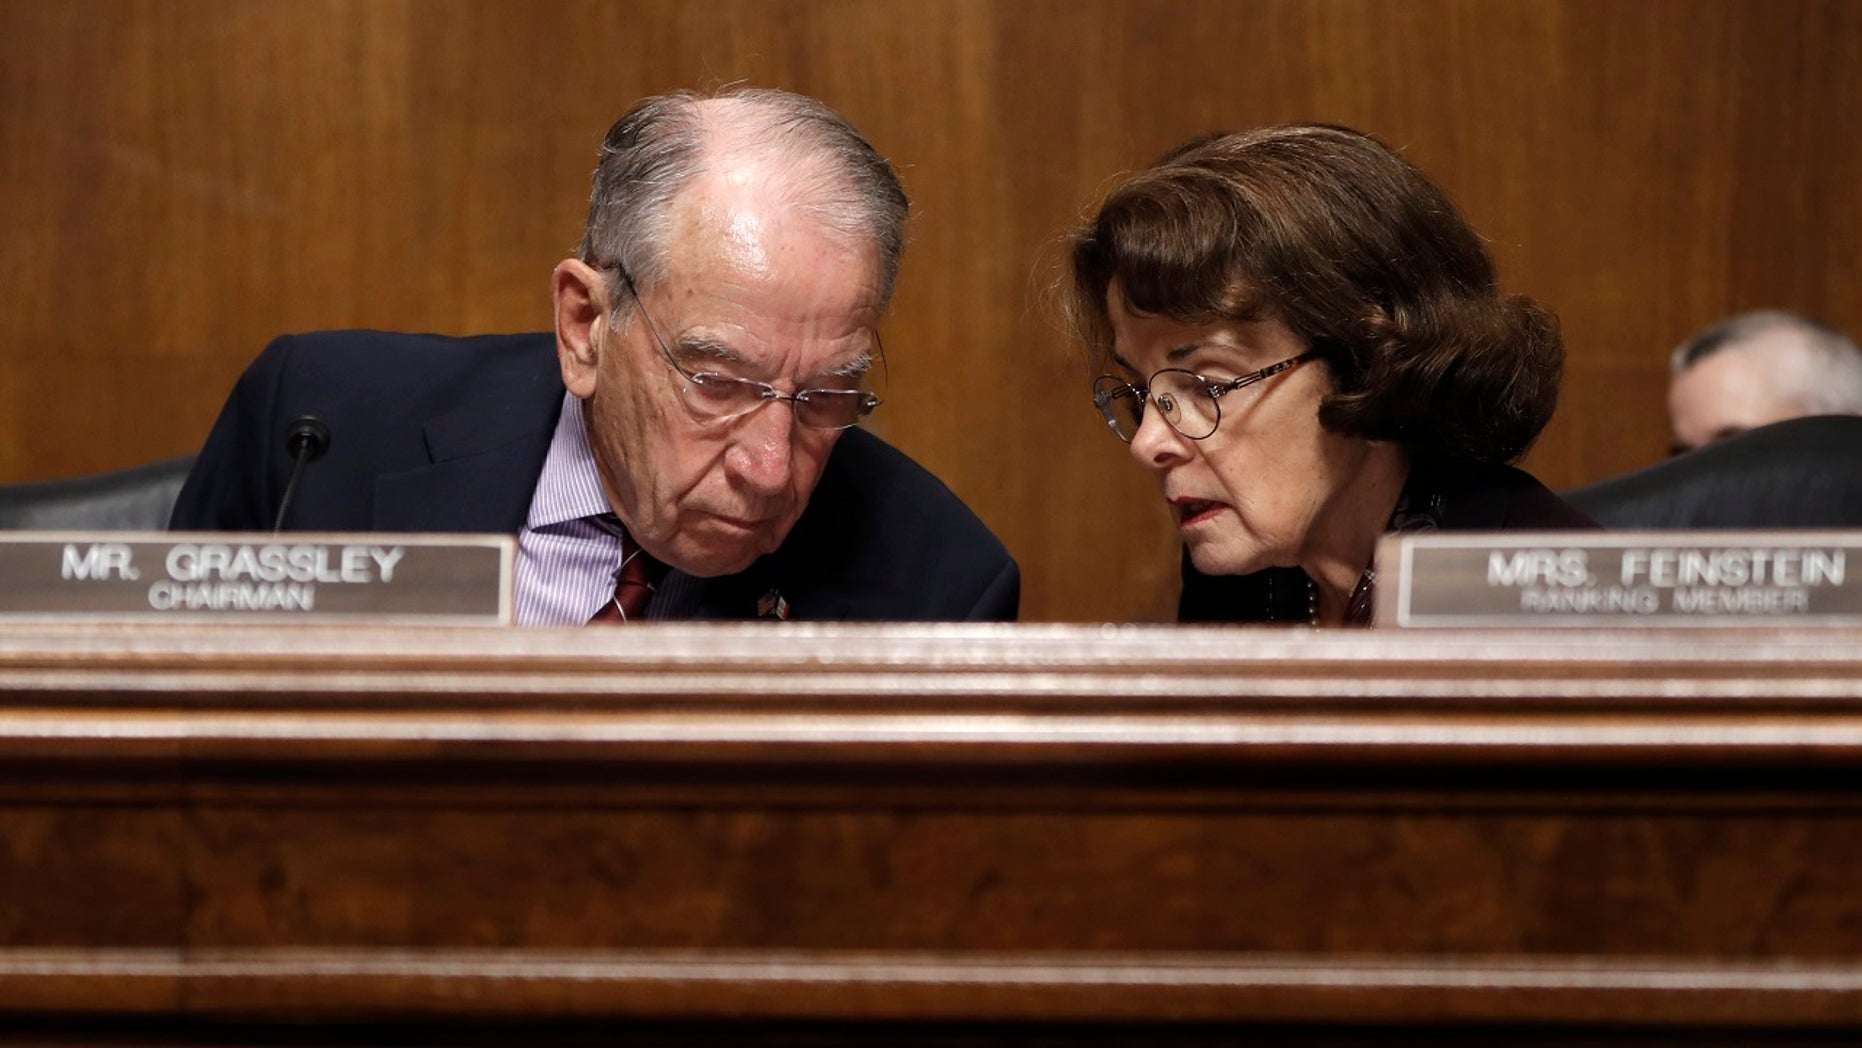 """Senate Judiciary Committee Chairman Chuck Grassley, R-Iowa, said early Thursday the committee has received a """"supplemental FBI background file"""" on Supreme Court nominee Brett Kavanaugh."""